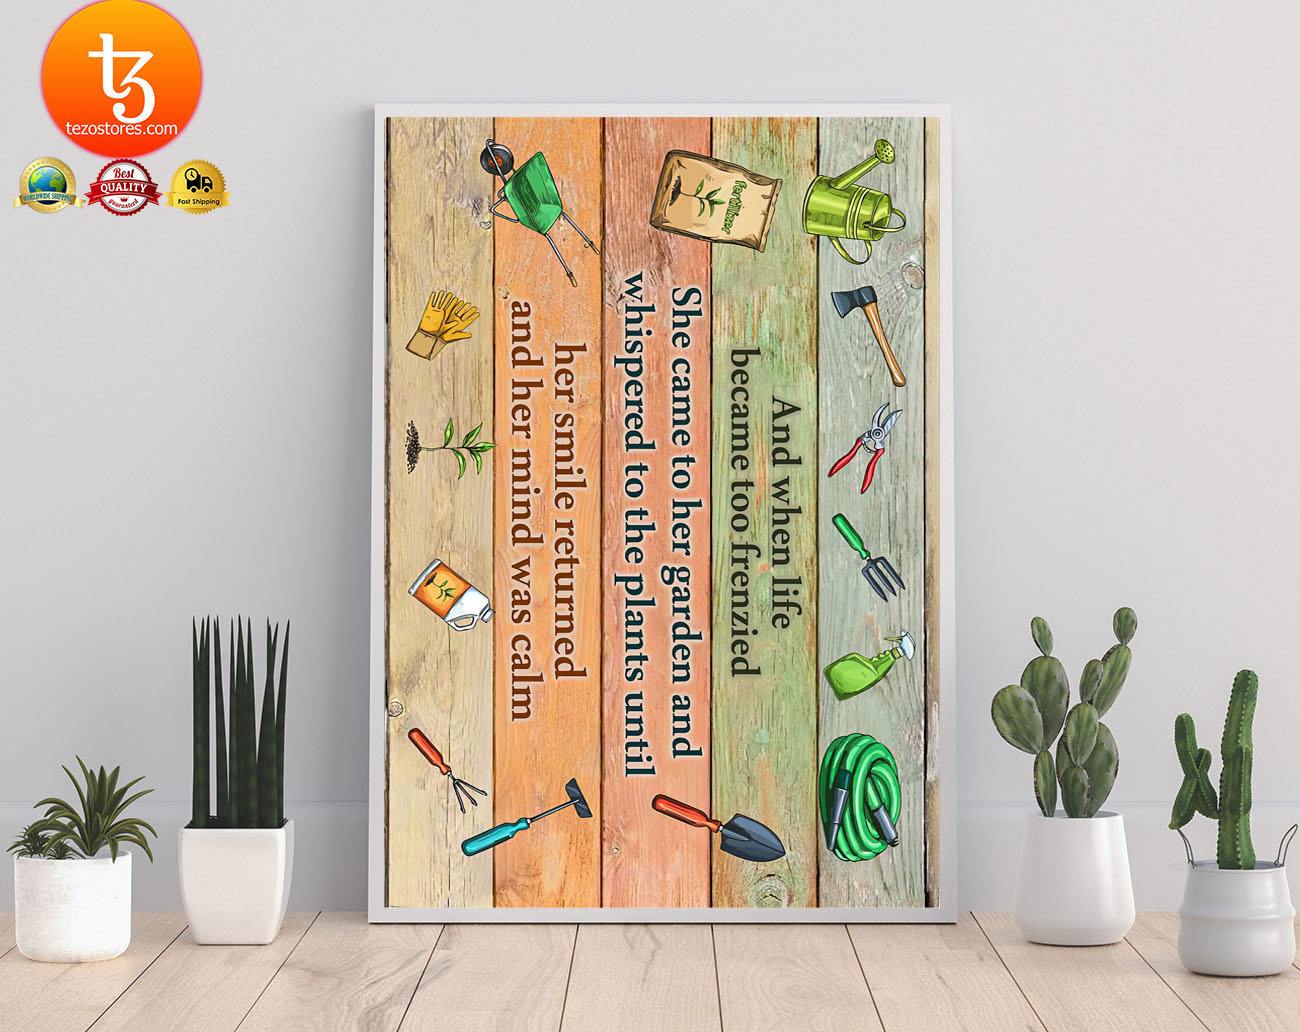 Garden-And-when-life-became-too-frenzied-poster-22